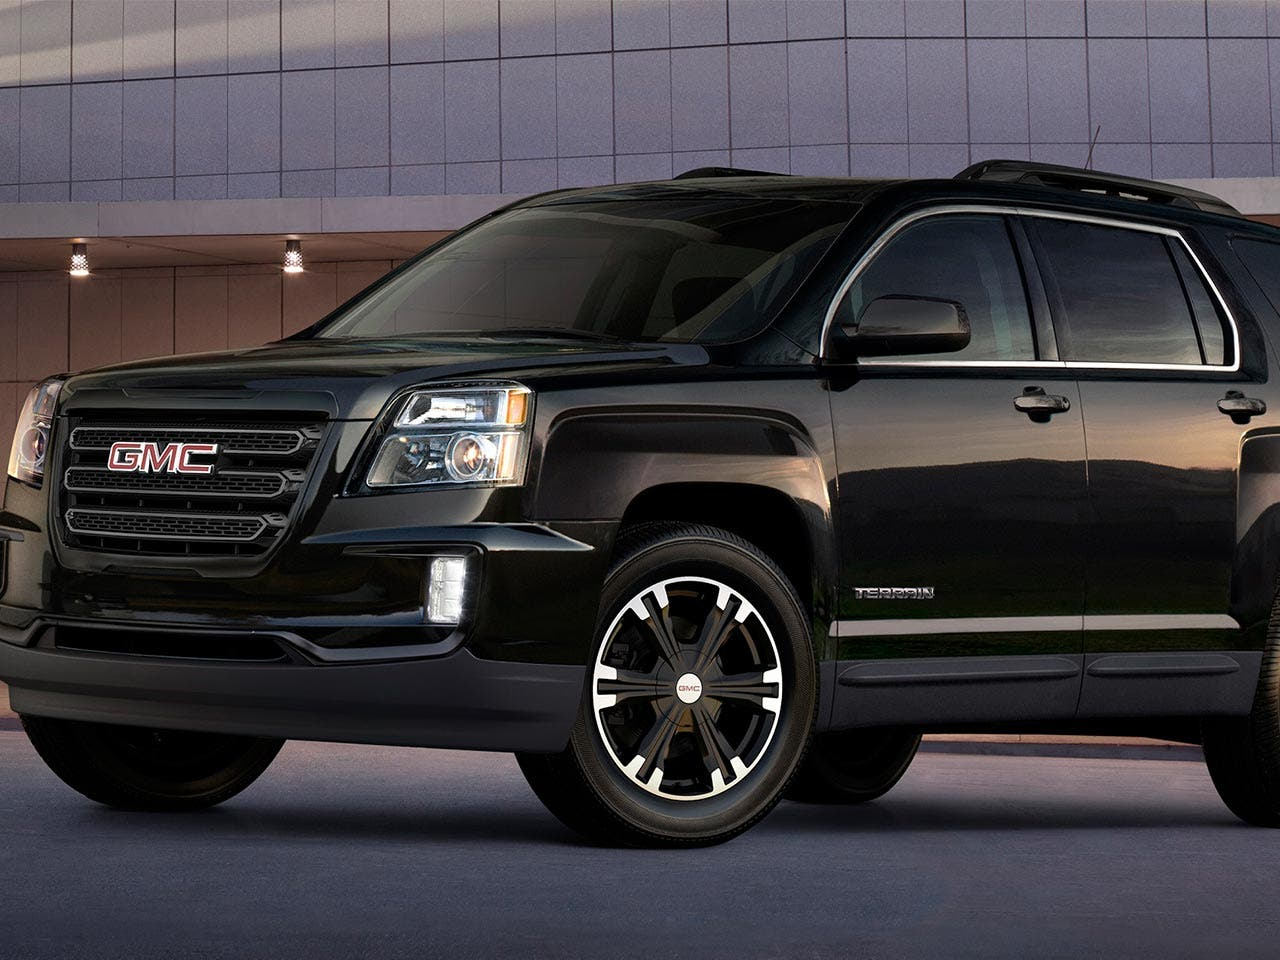 GMC Terrain © General Motors